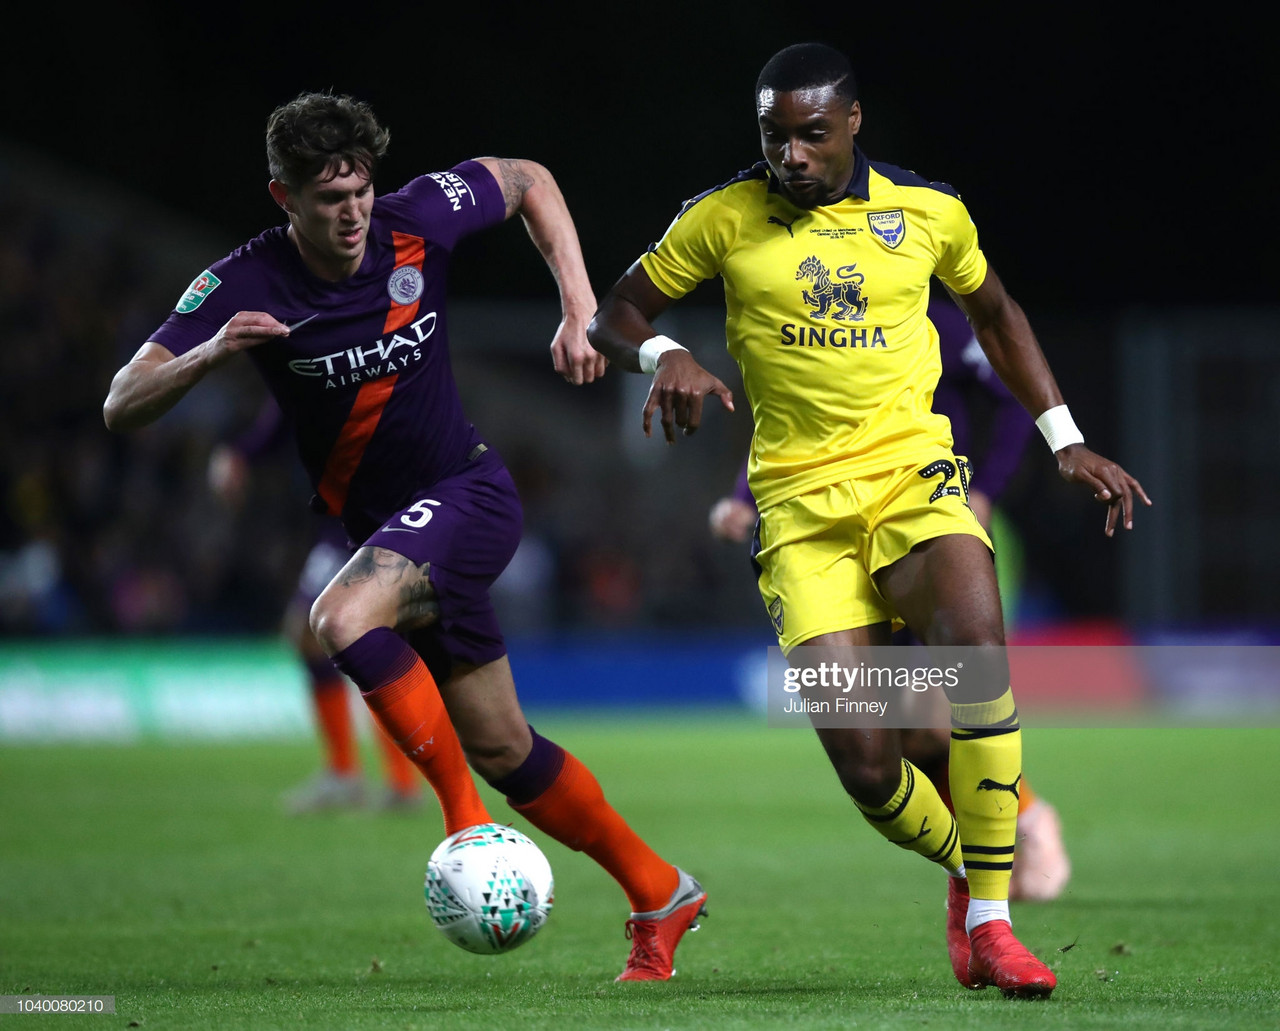 Oxford United vs Manchester City Preview: Holders looking to avoid Carabao Cup upset